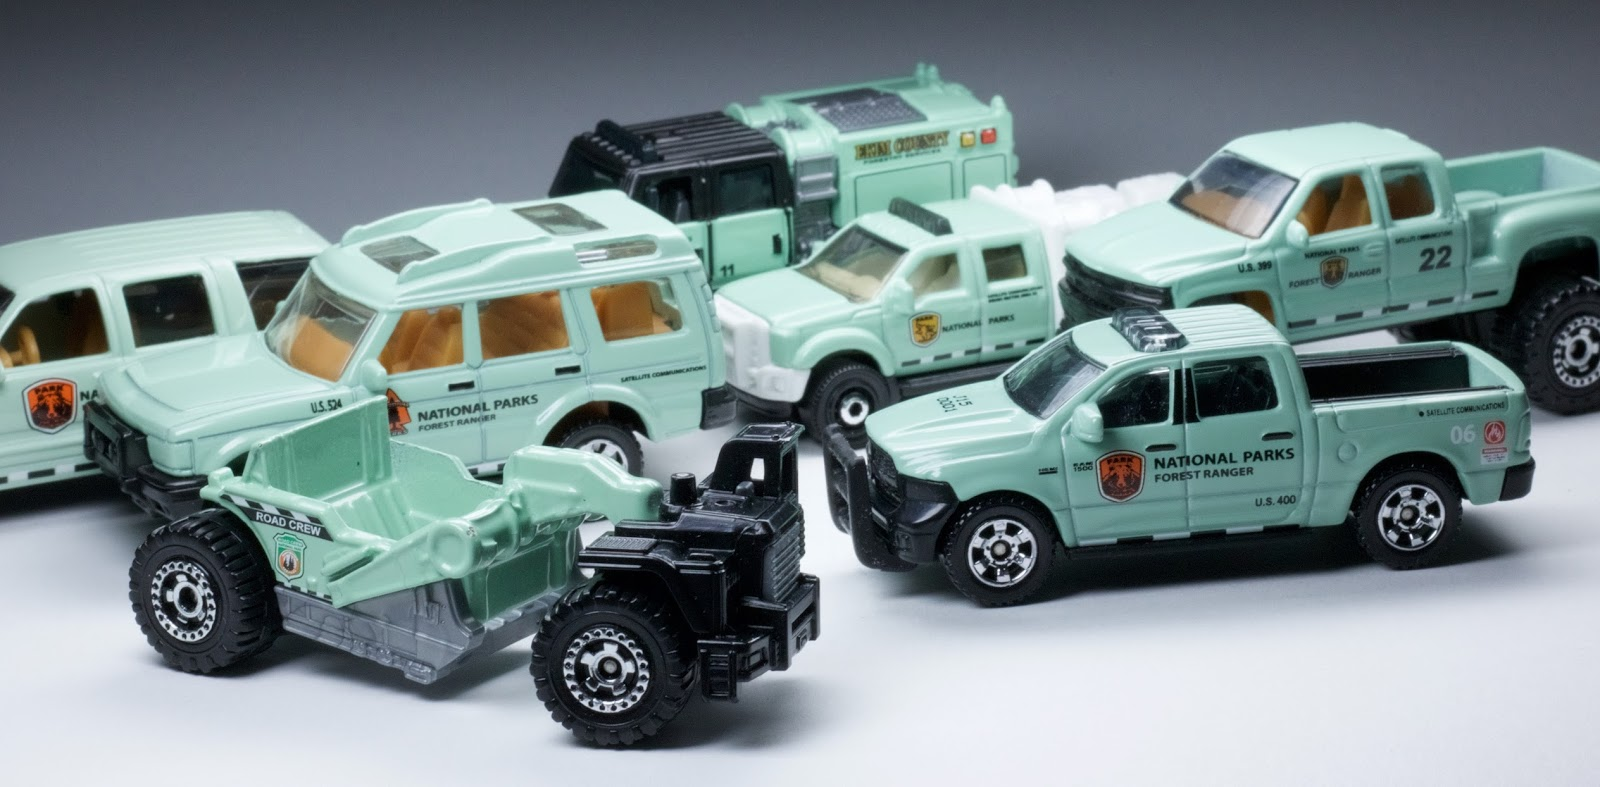 Two Matchbox National Parks Models Are Coming In 2016 And